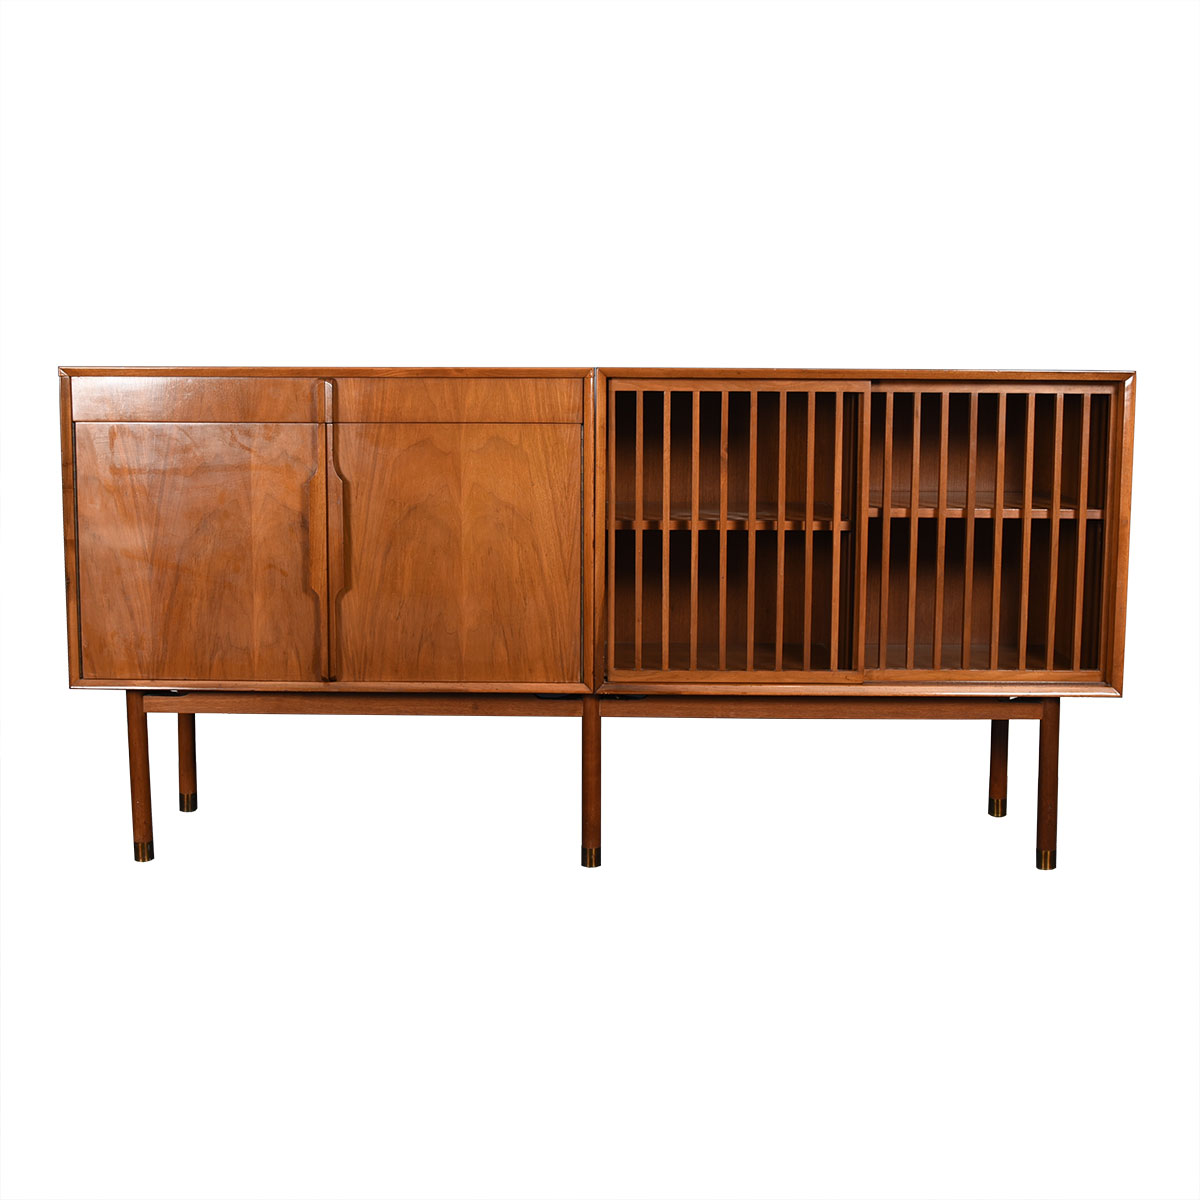 Walnut 4 Door Slatted Sideboard / Lighted Vanity Bar Cabinet